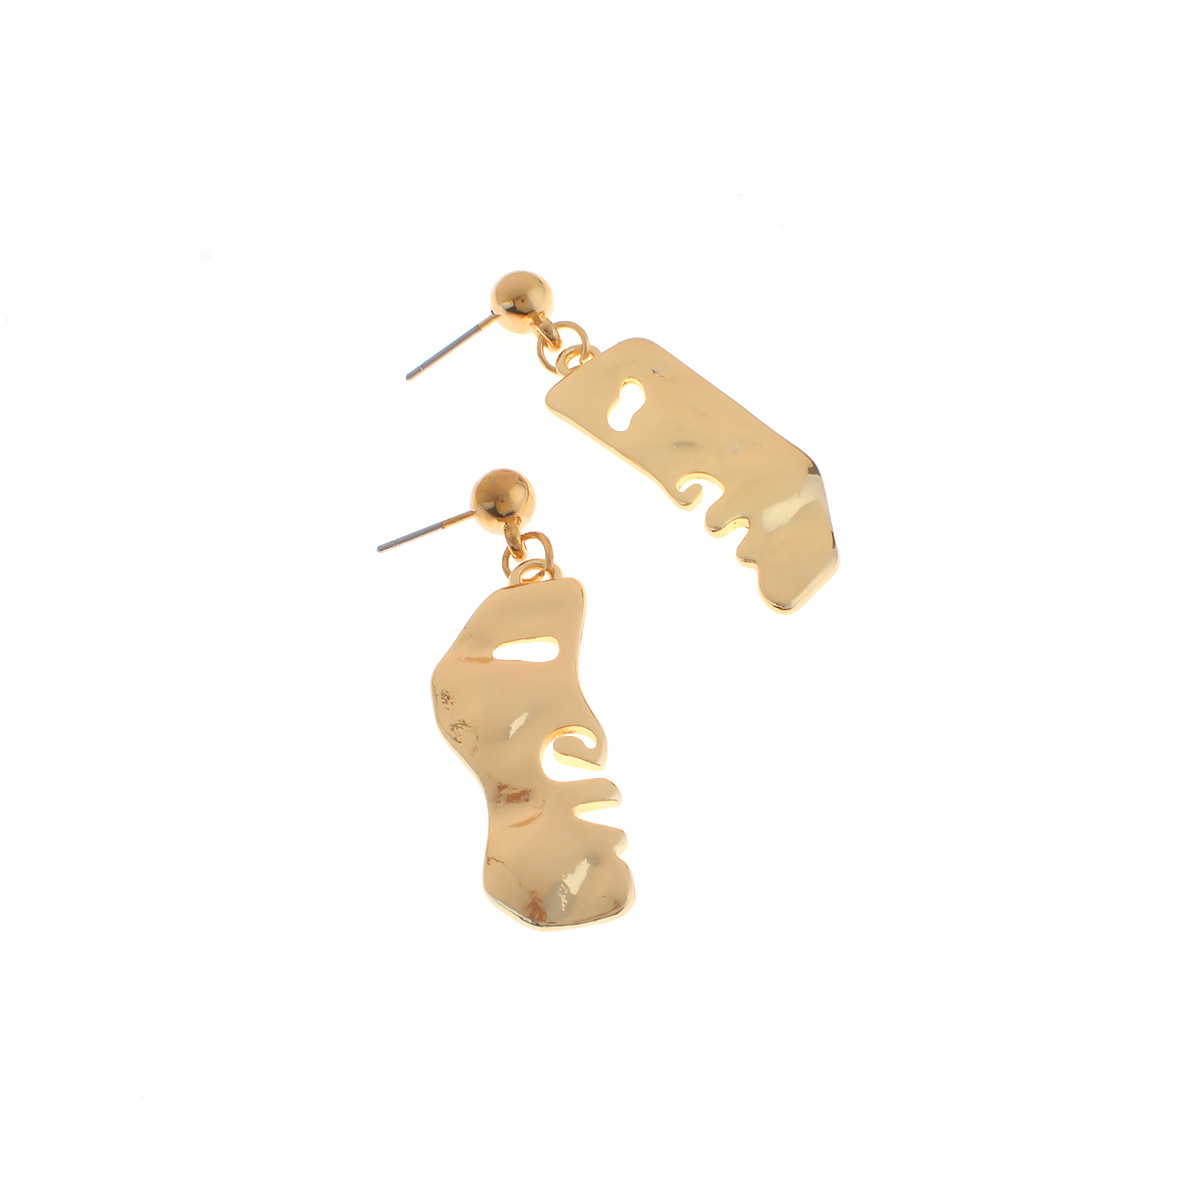 Occident and the United States alloy plating earring (B0698 gold)NHXR1442-B0698 gold